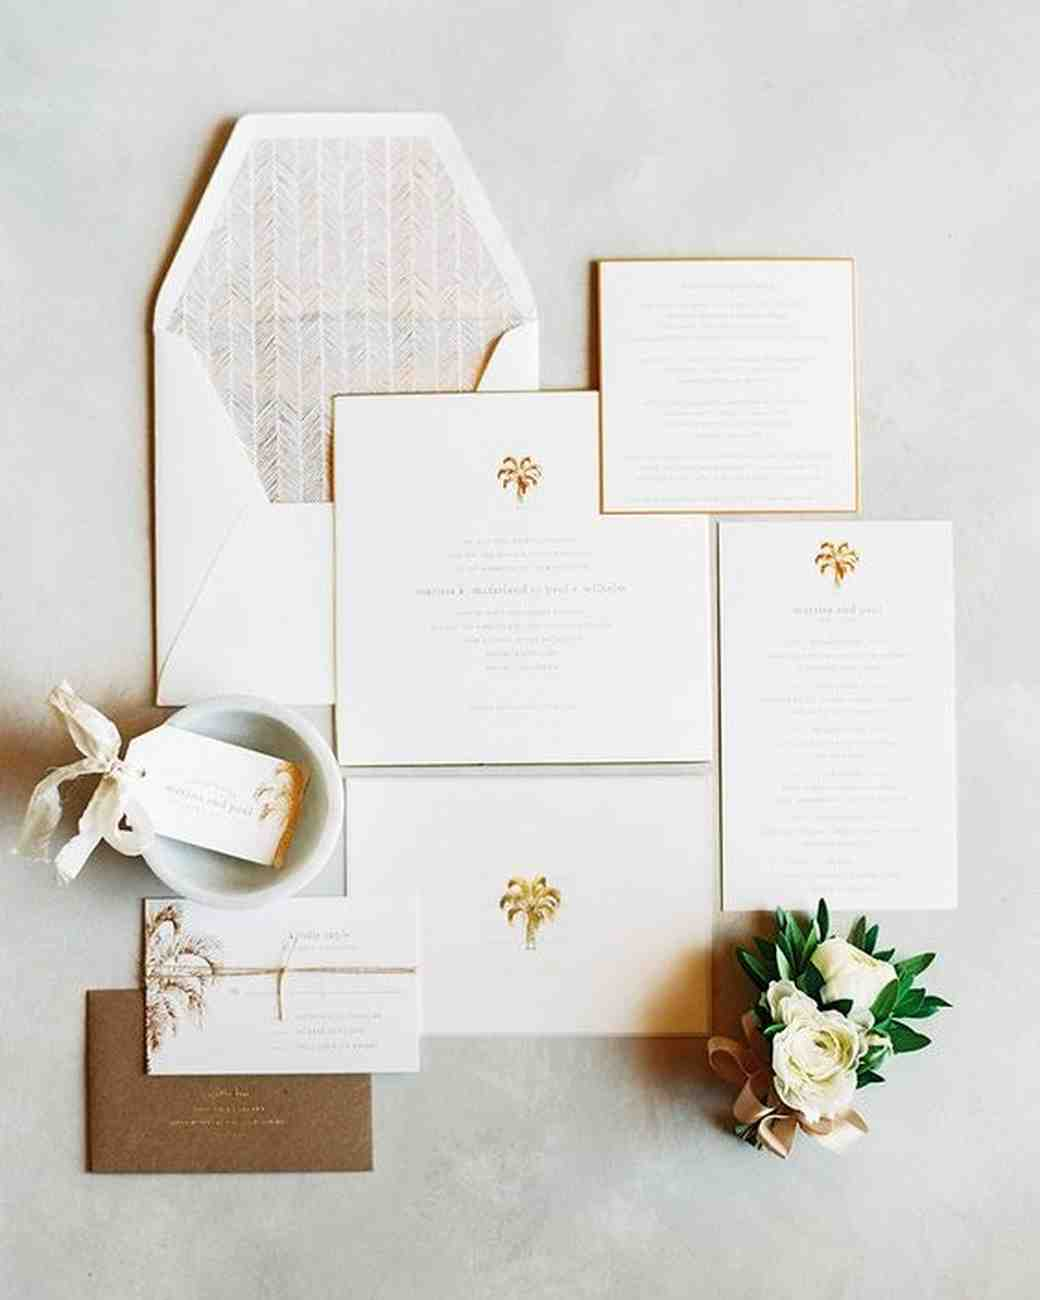 Beautiful Classic Wedding Invitation With Palm Trees